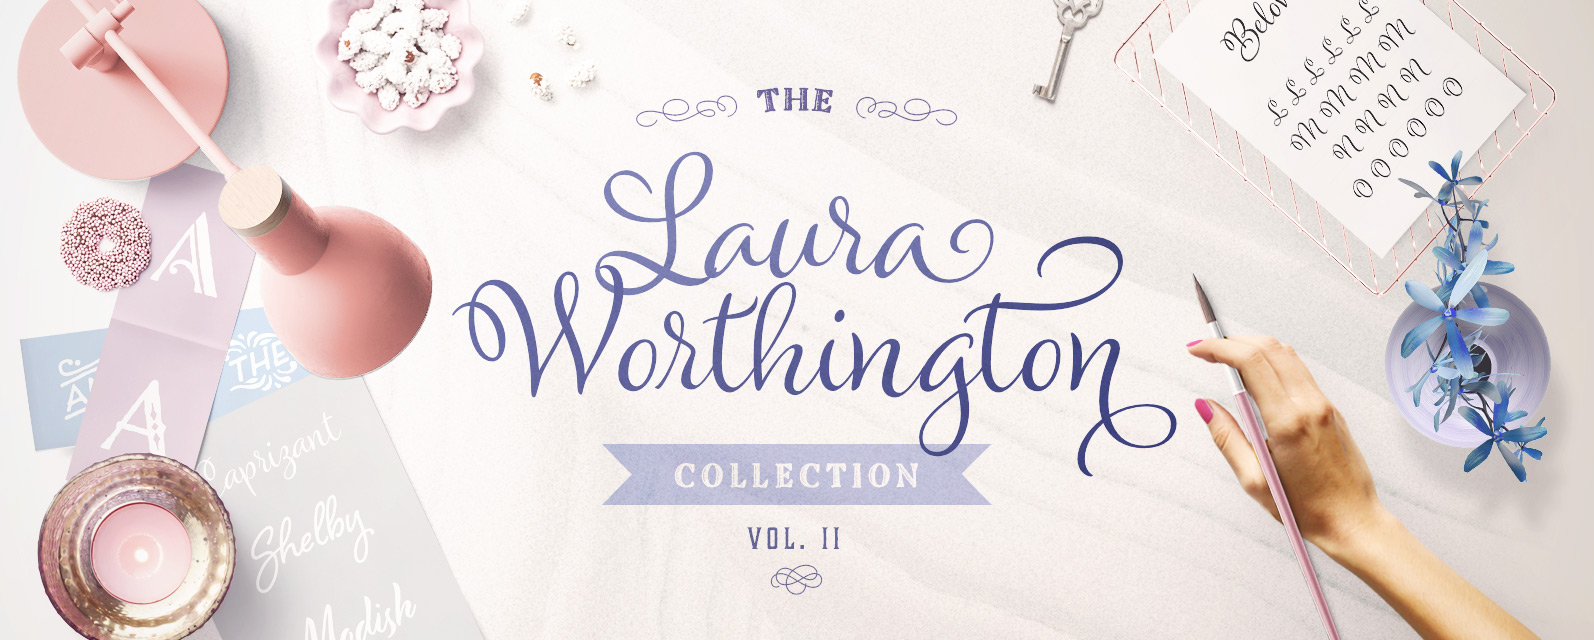 18 Laura Worthington Typefaces for ONLY $19